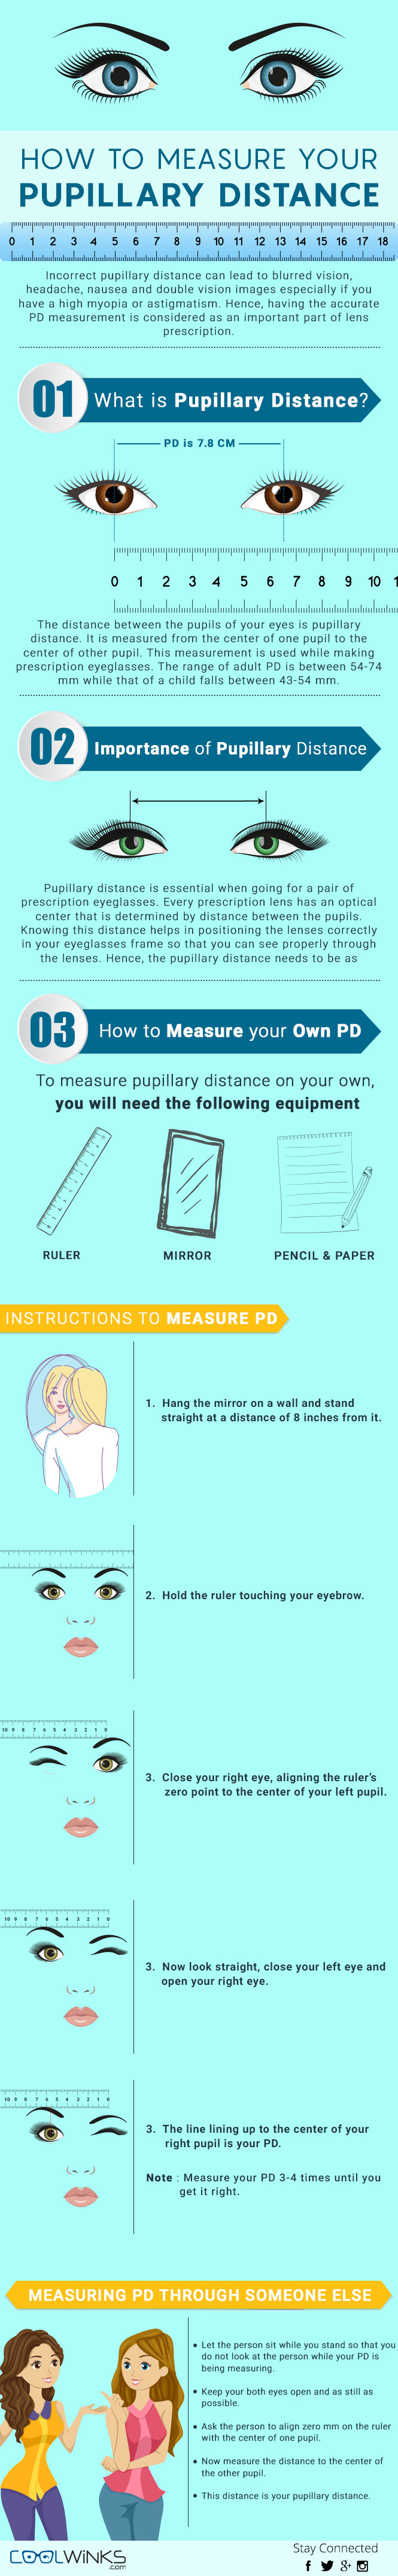 how to measure pd at home